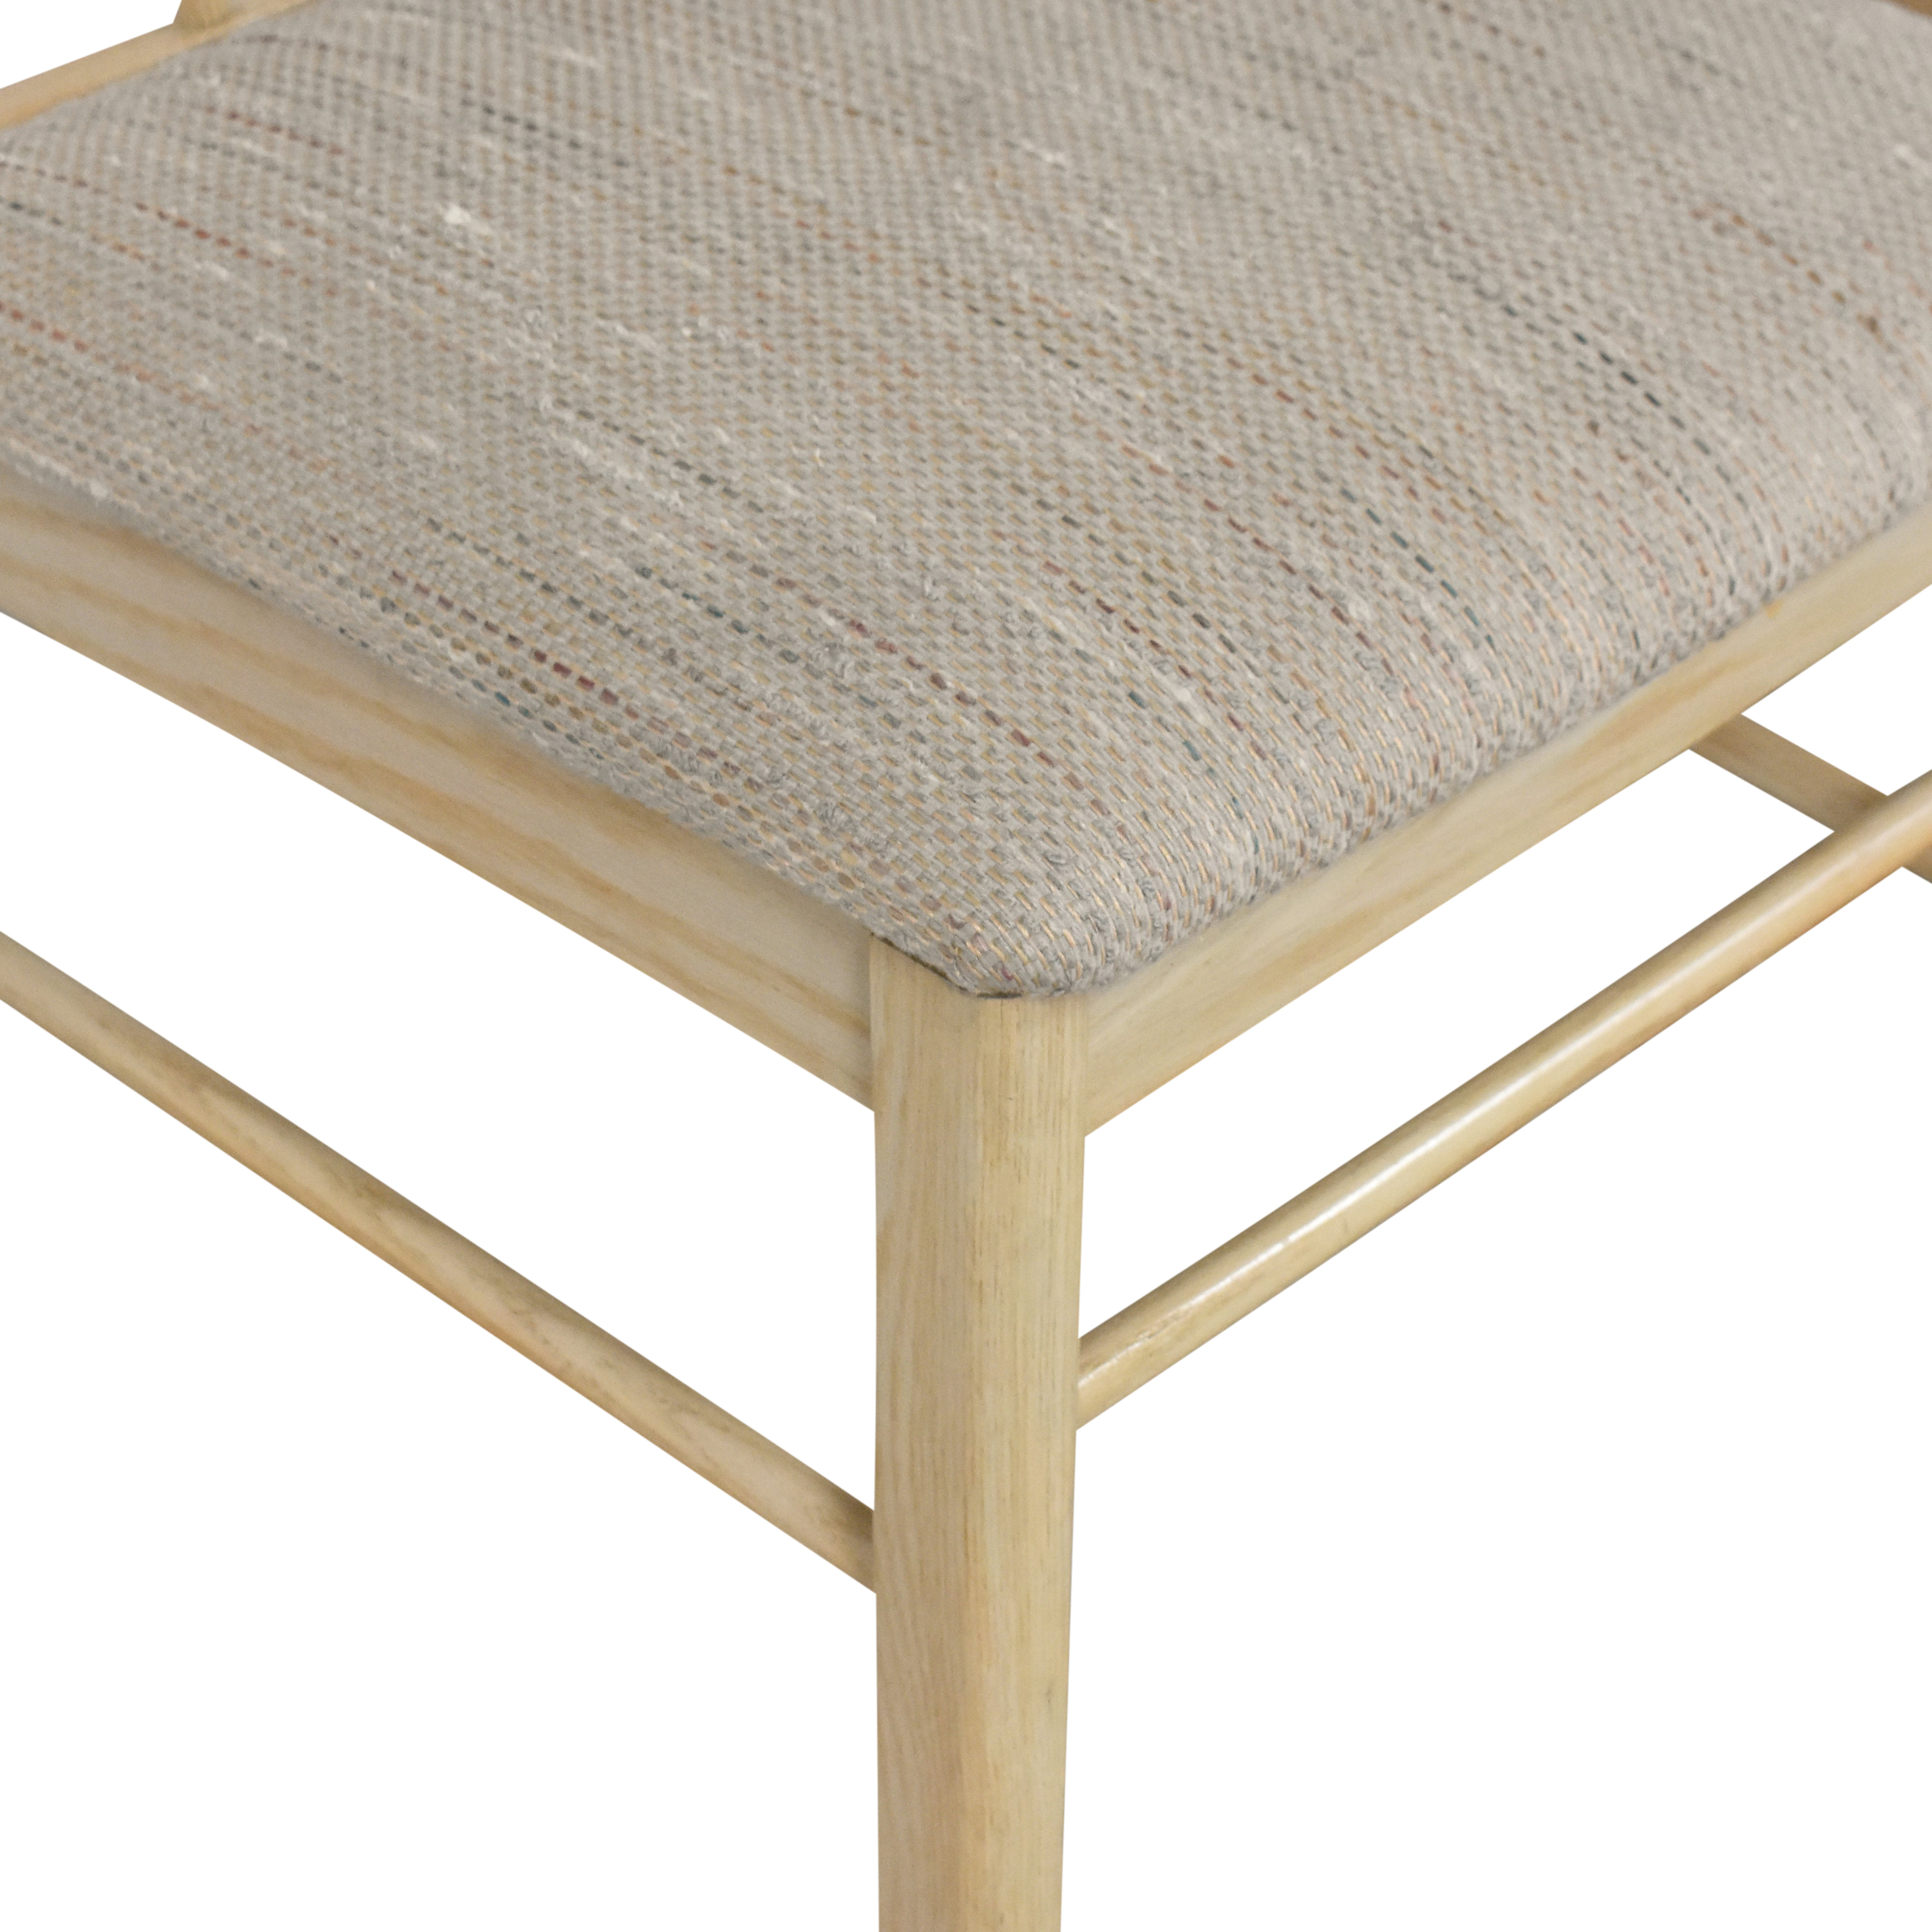 Dinaire Dinaire Upholstered Seat Dining Chairs pa